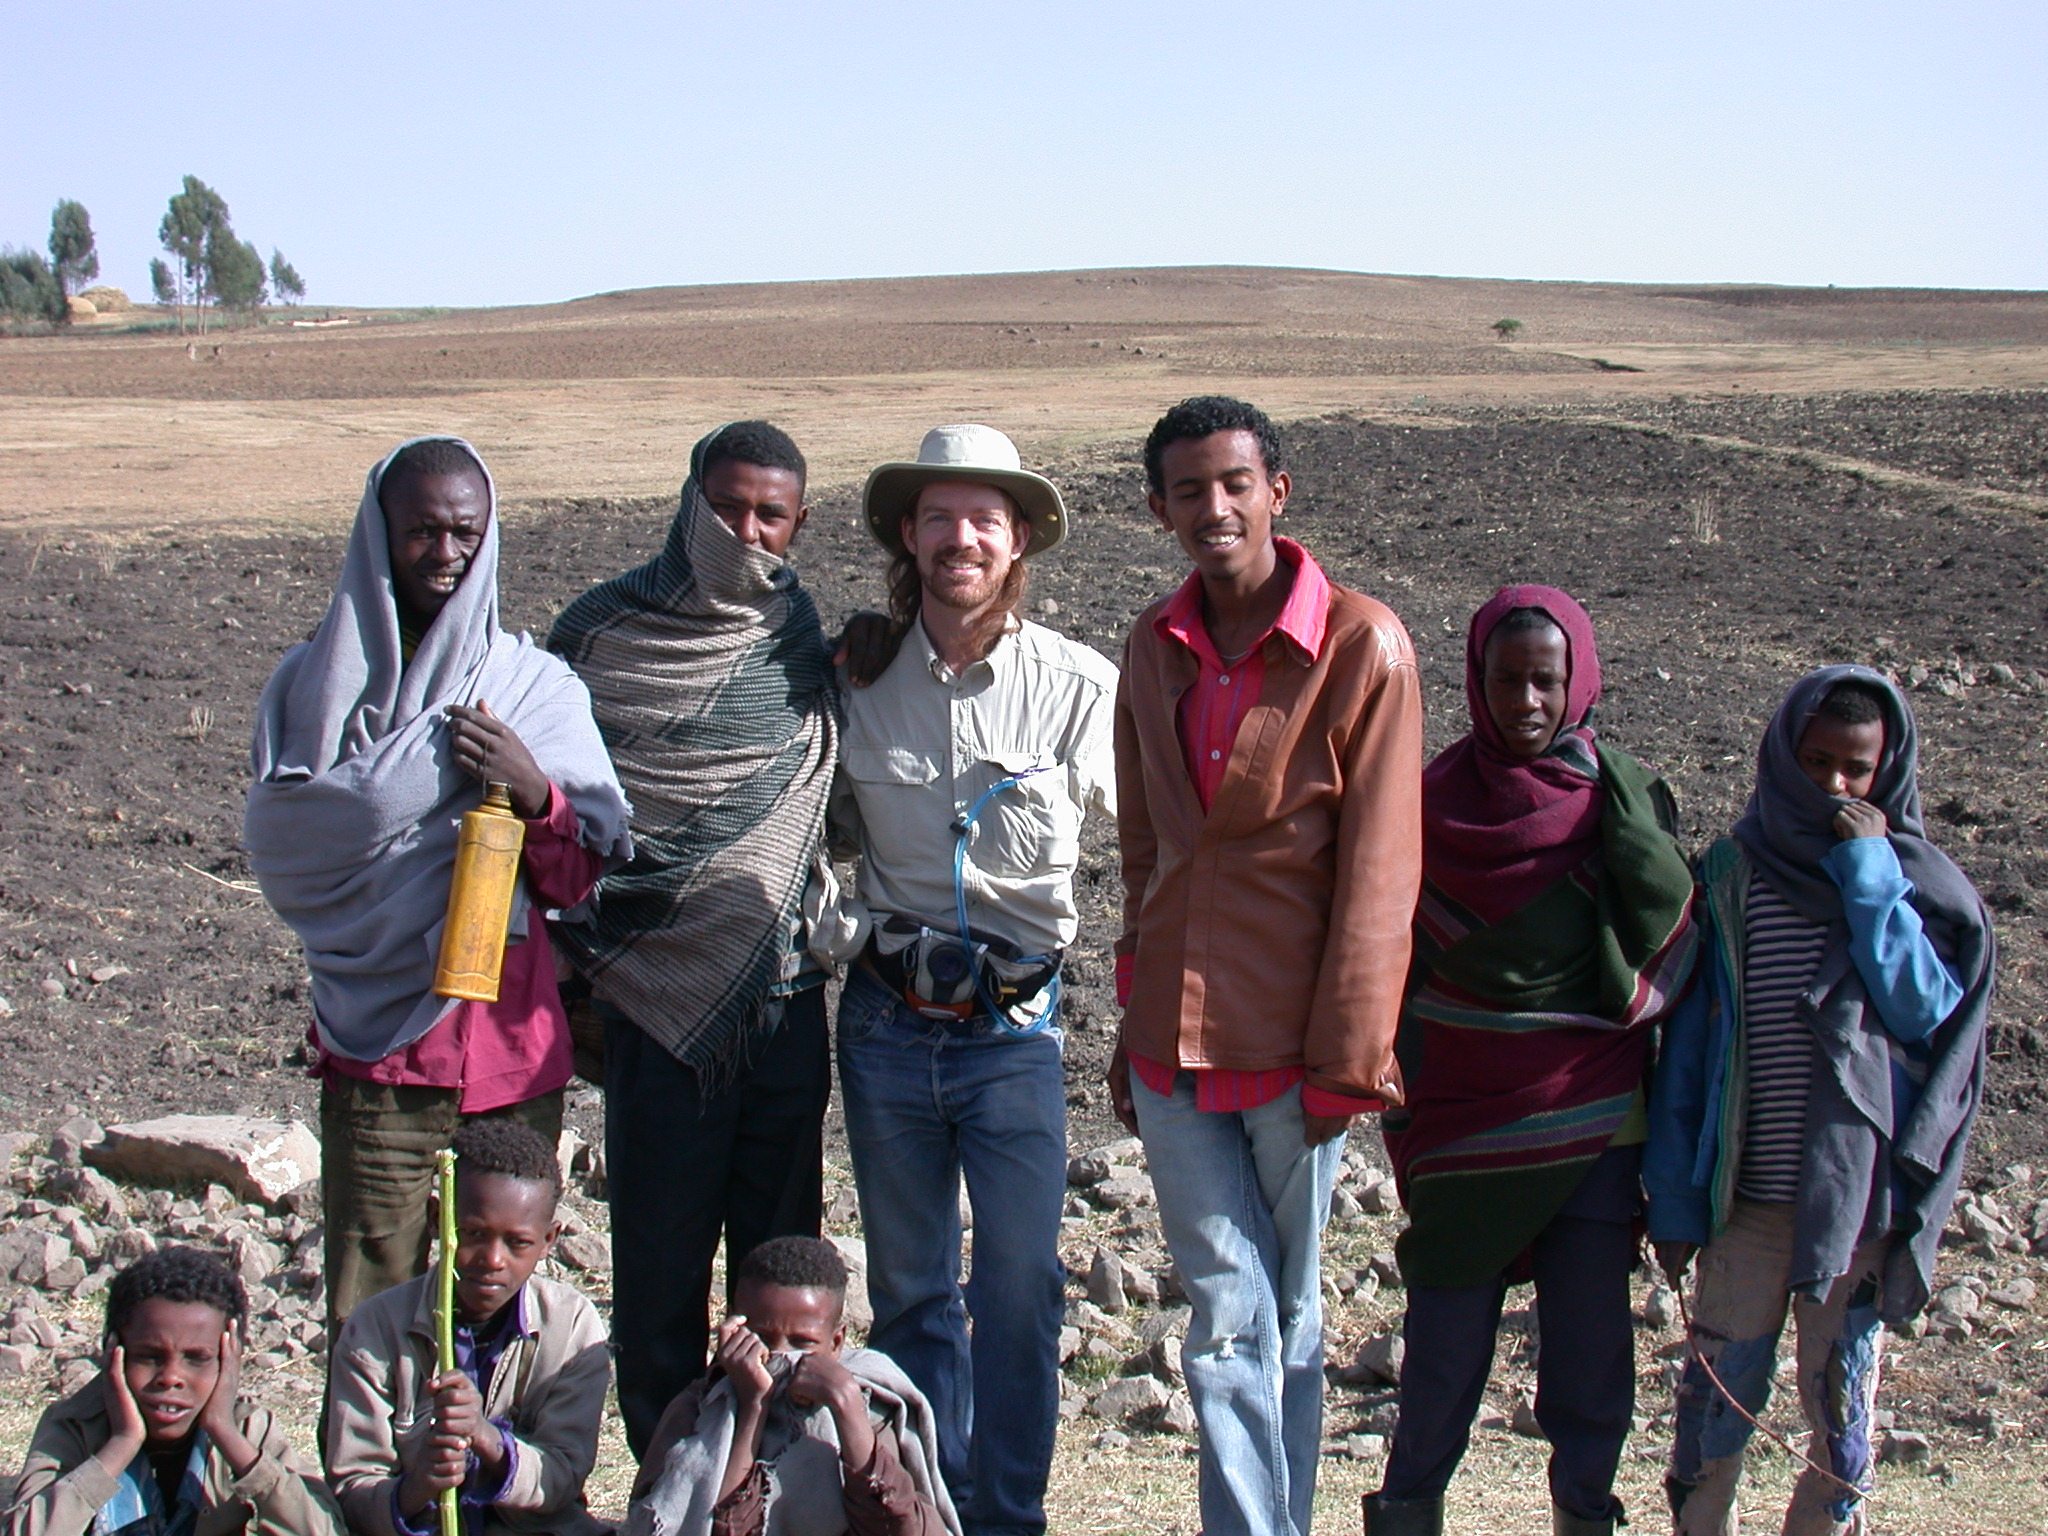 Will With Residents of Village at Site of Bus Breakdown, Route From Gonder to Debark, Ethiopia